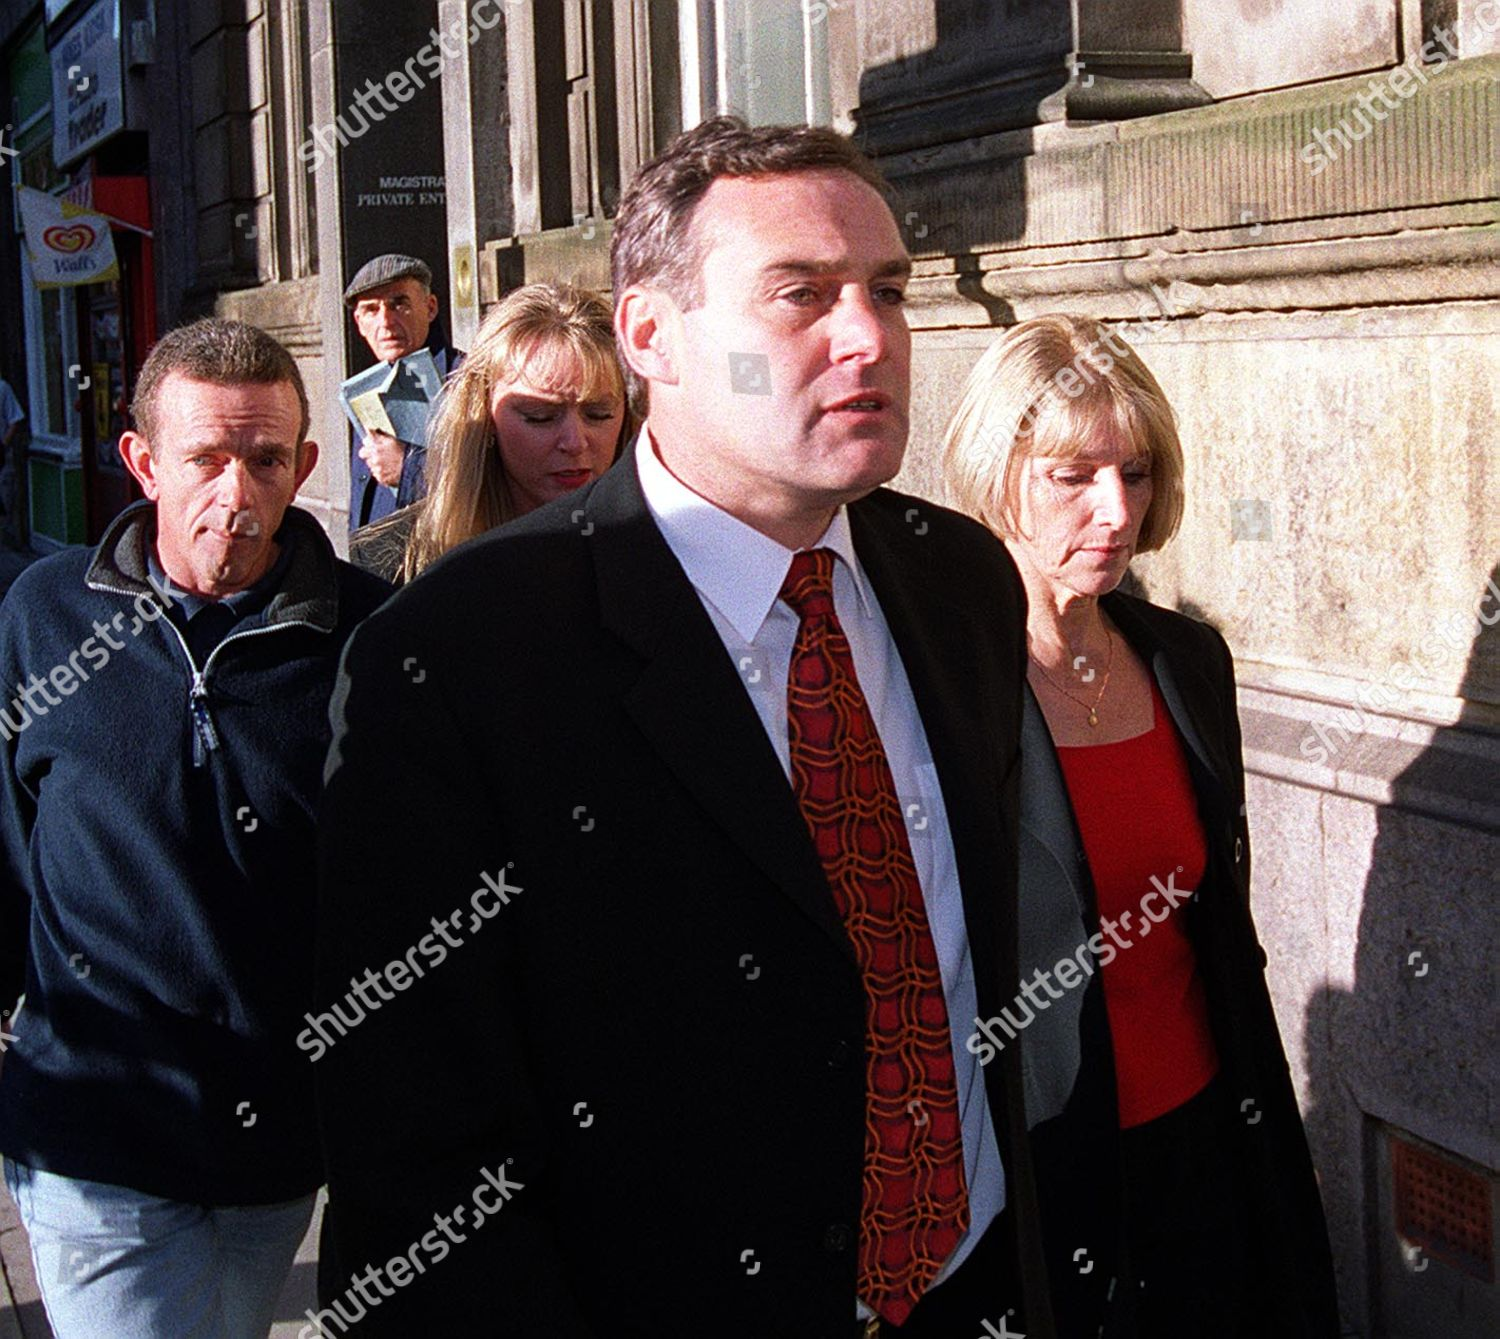 64cbf40cc Southampton Fc Manager David Jones Arriving At Liverpool Magistrates Court. He  Is Being Accused Of